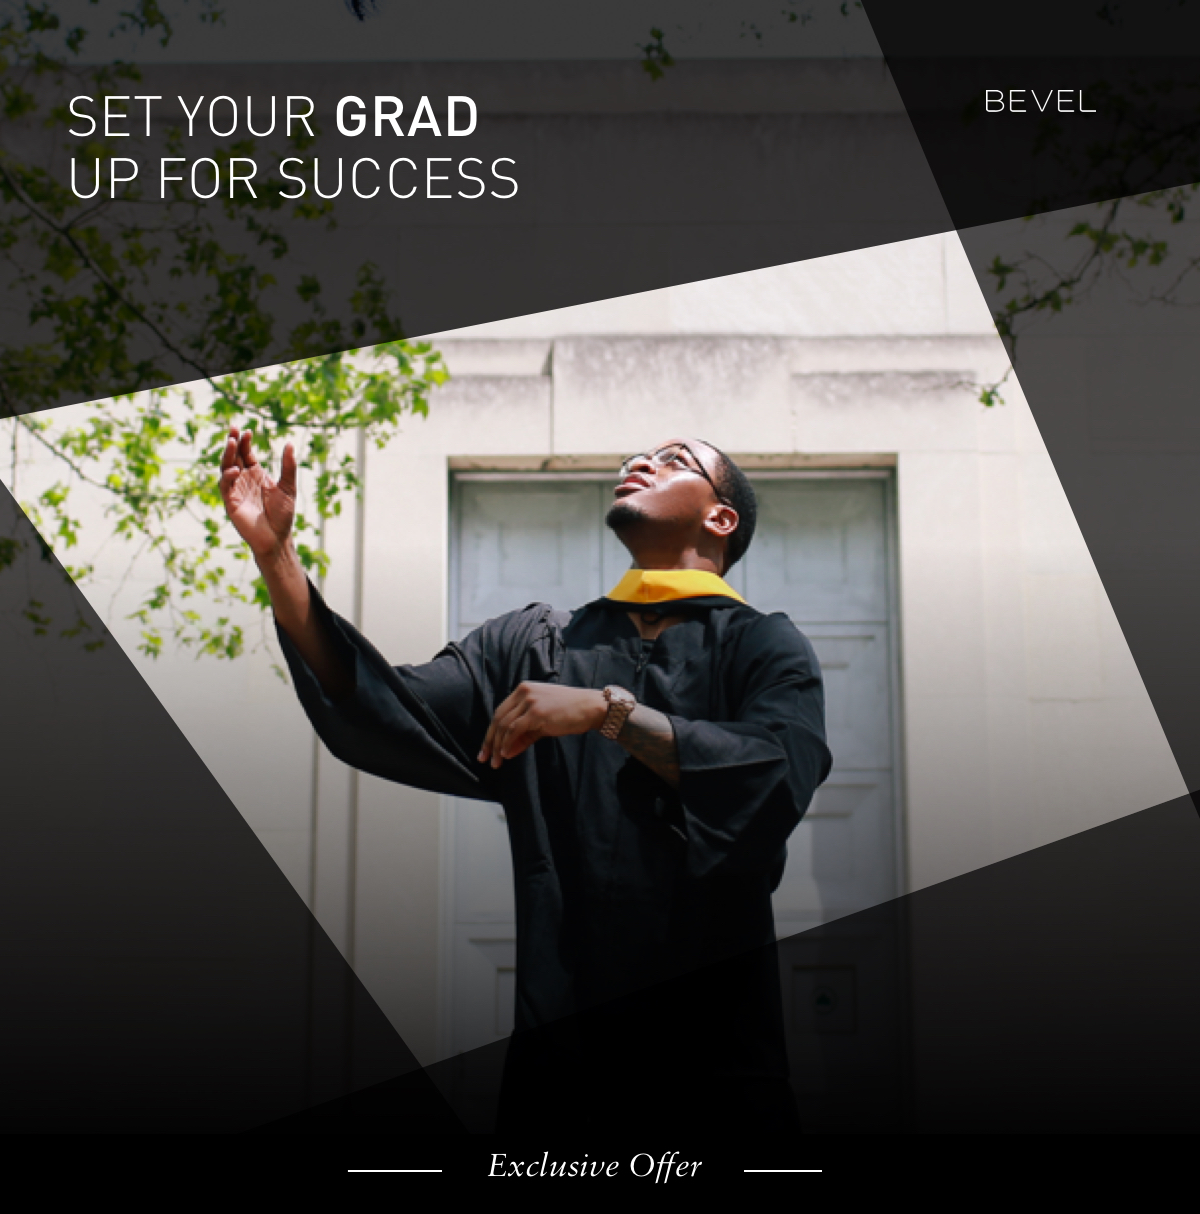 Set your grad up for success